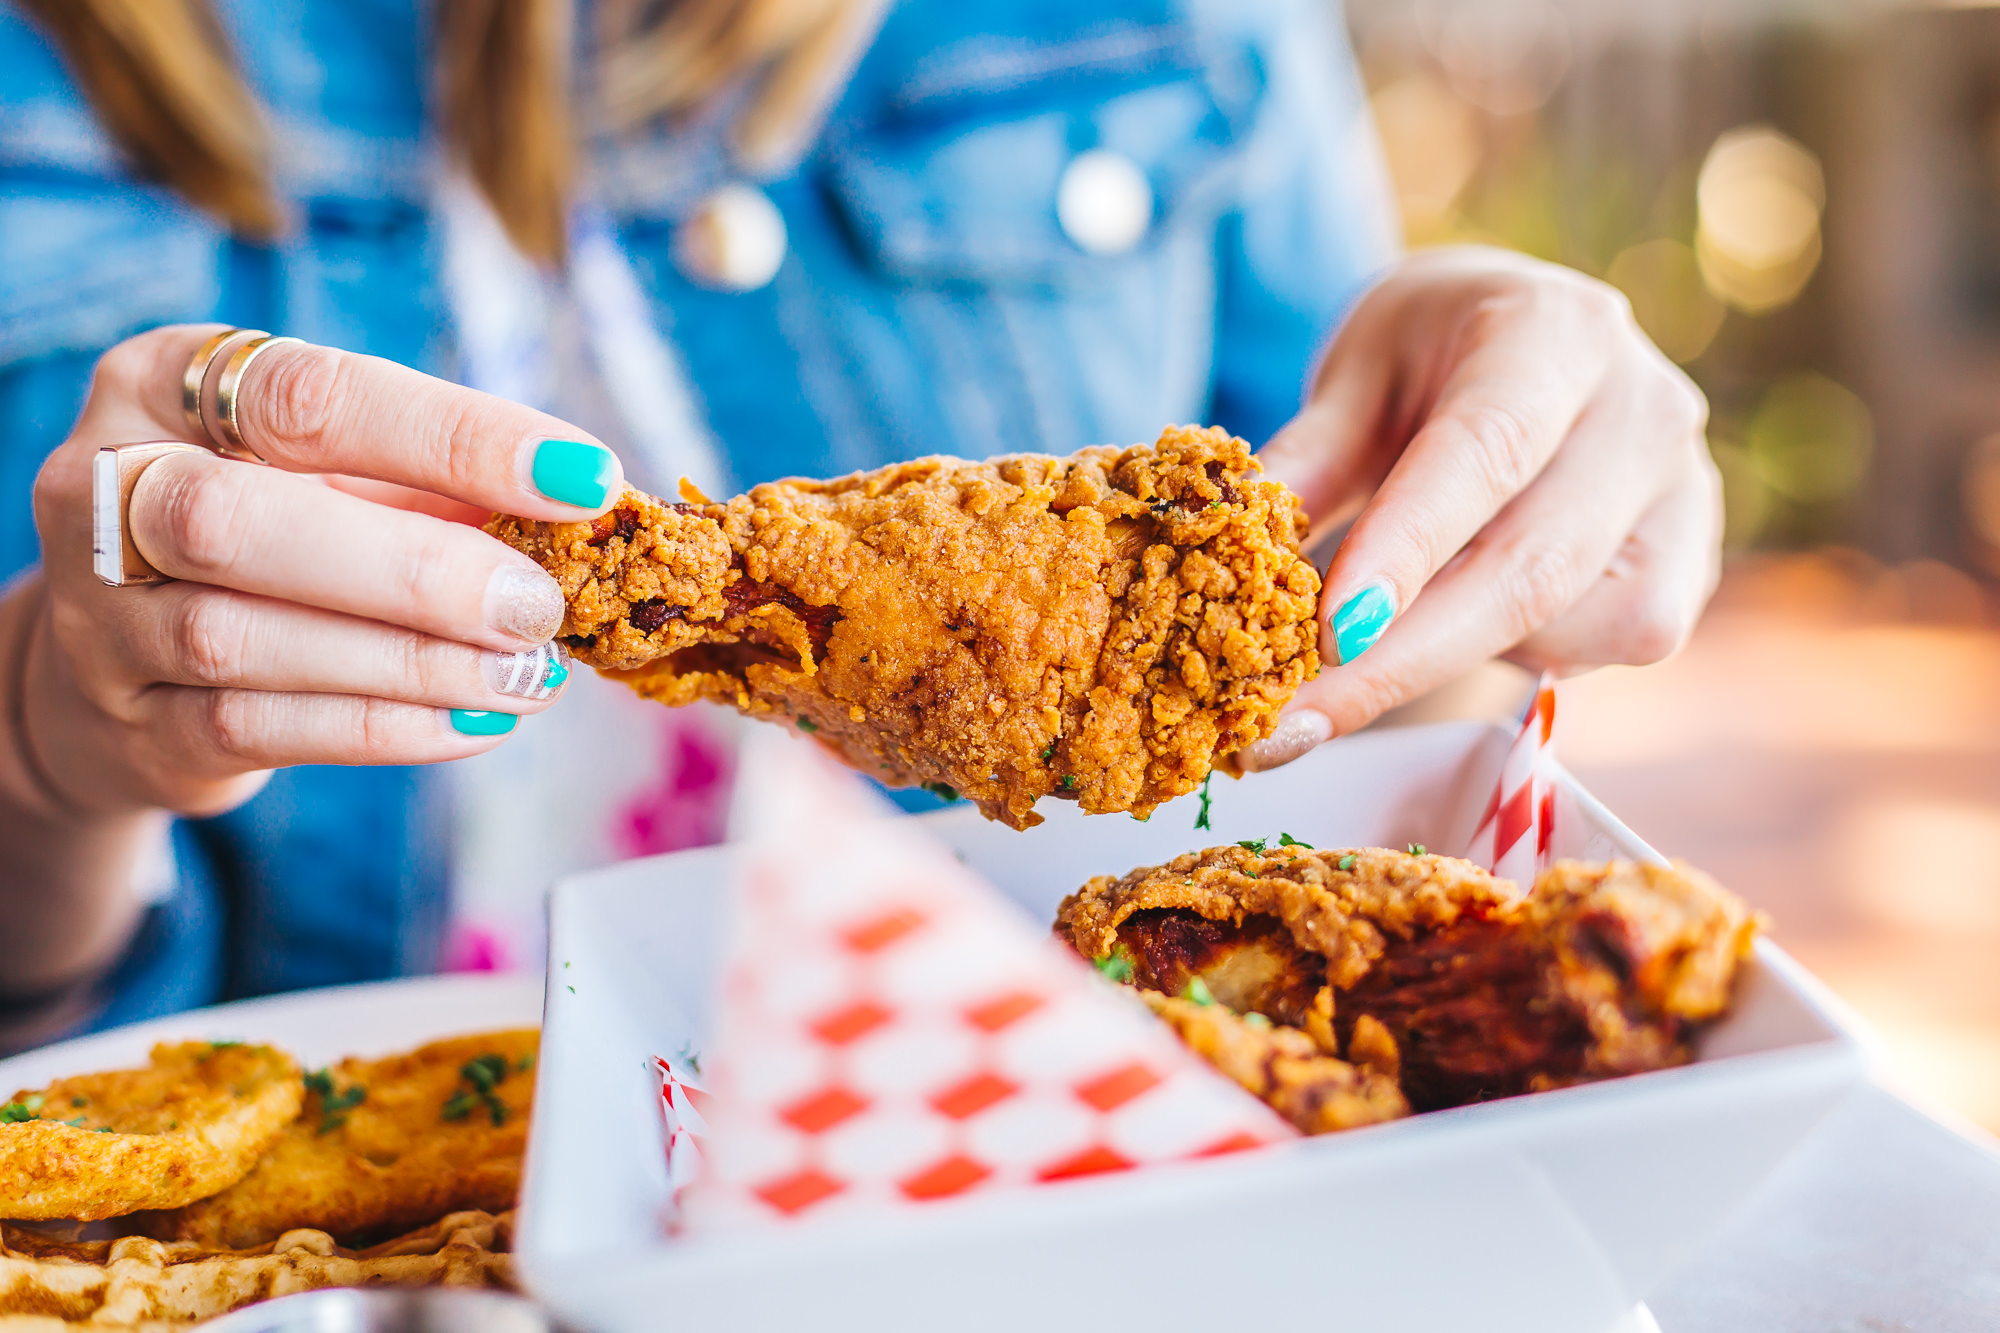 The outside coating on this fried chicken is so crunchy and flavorful